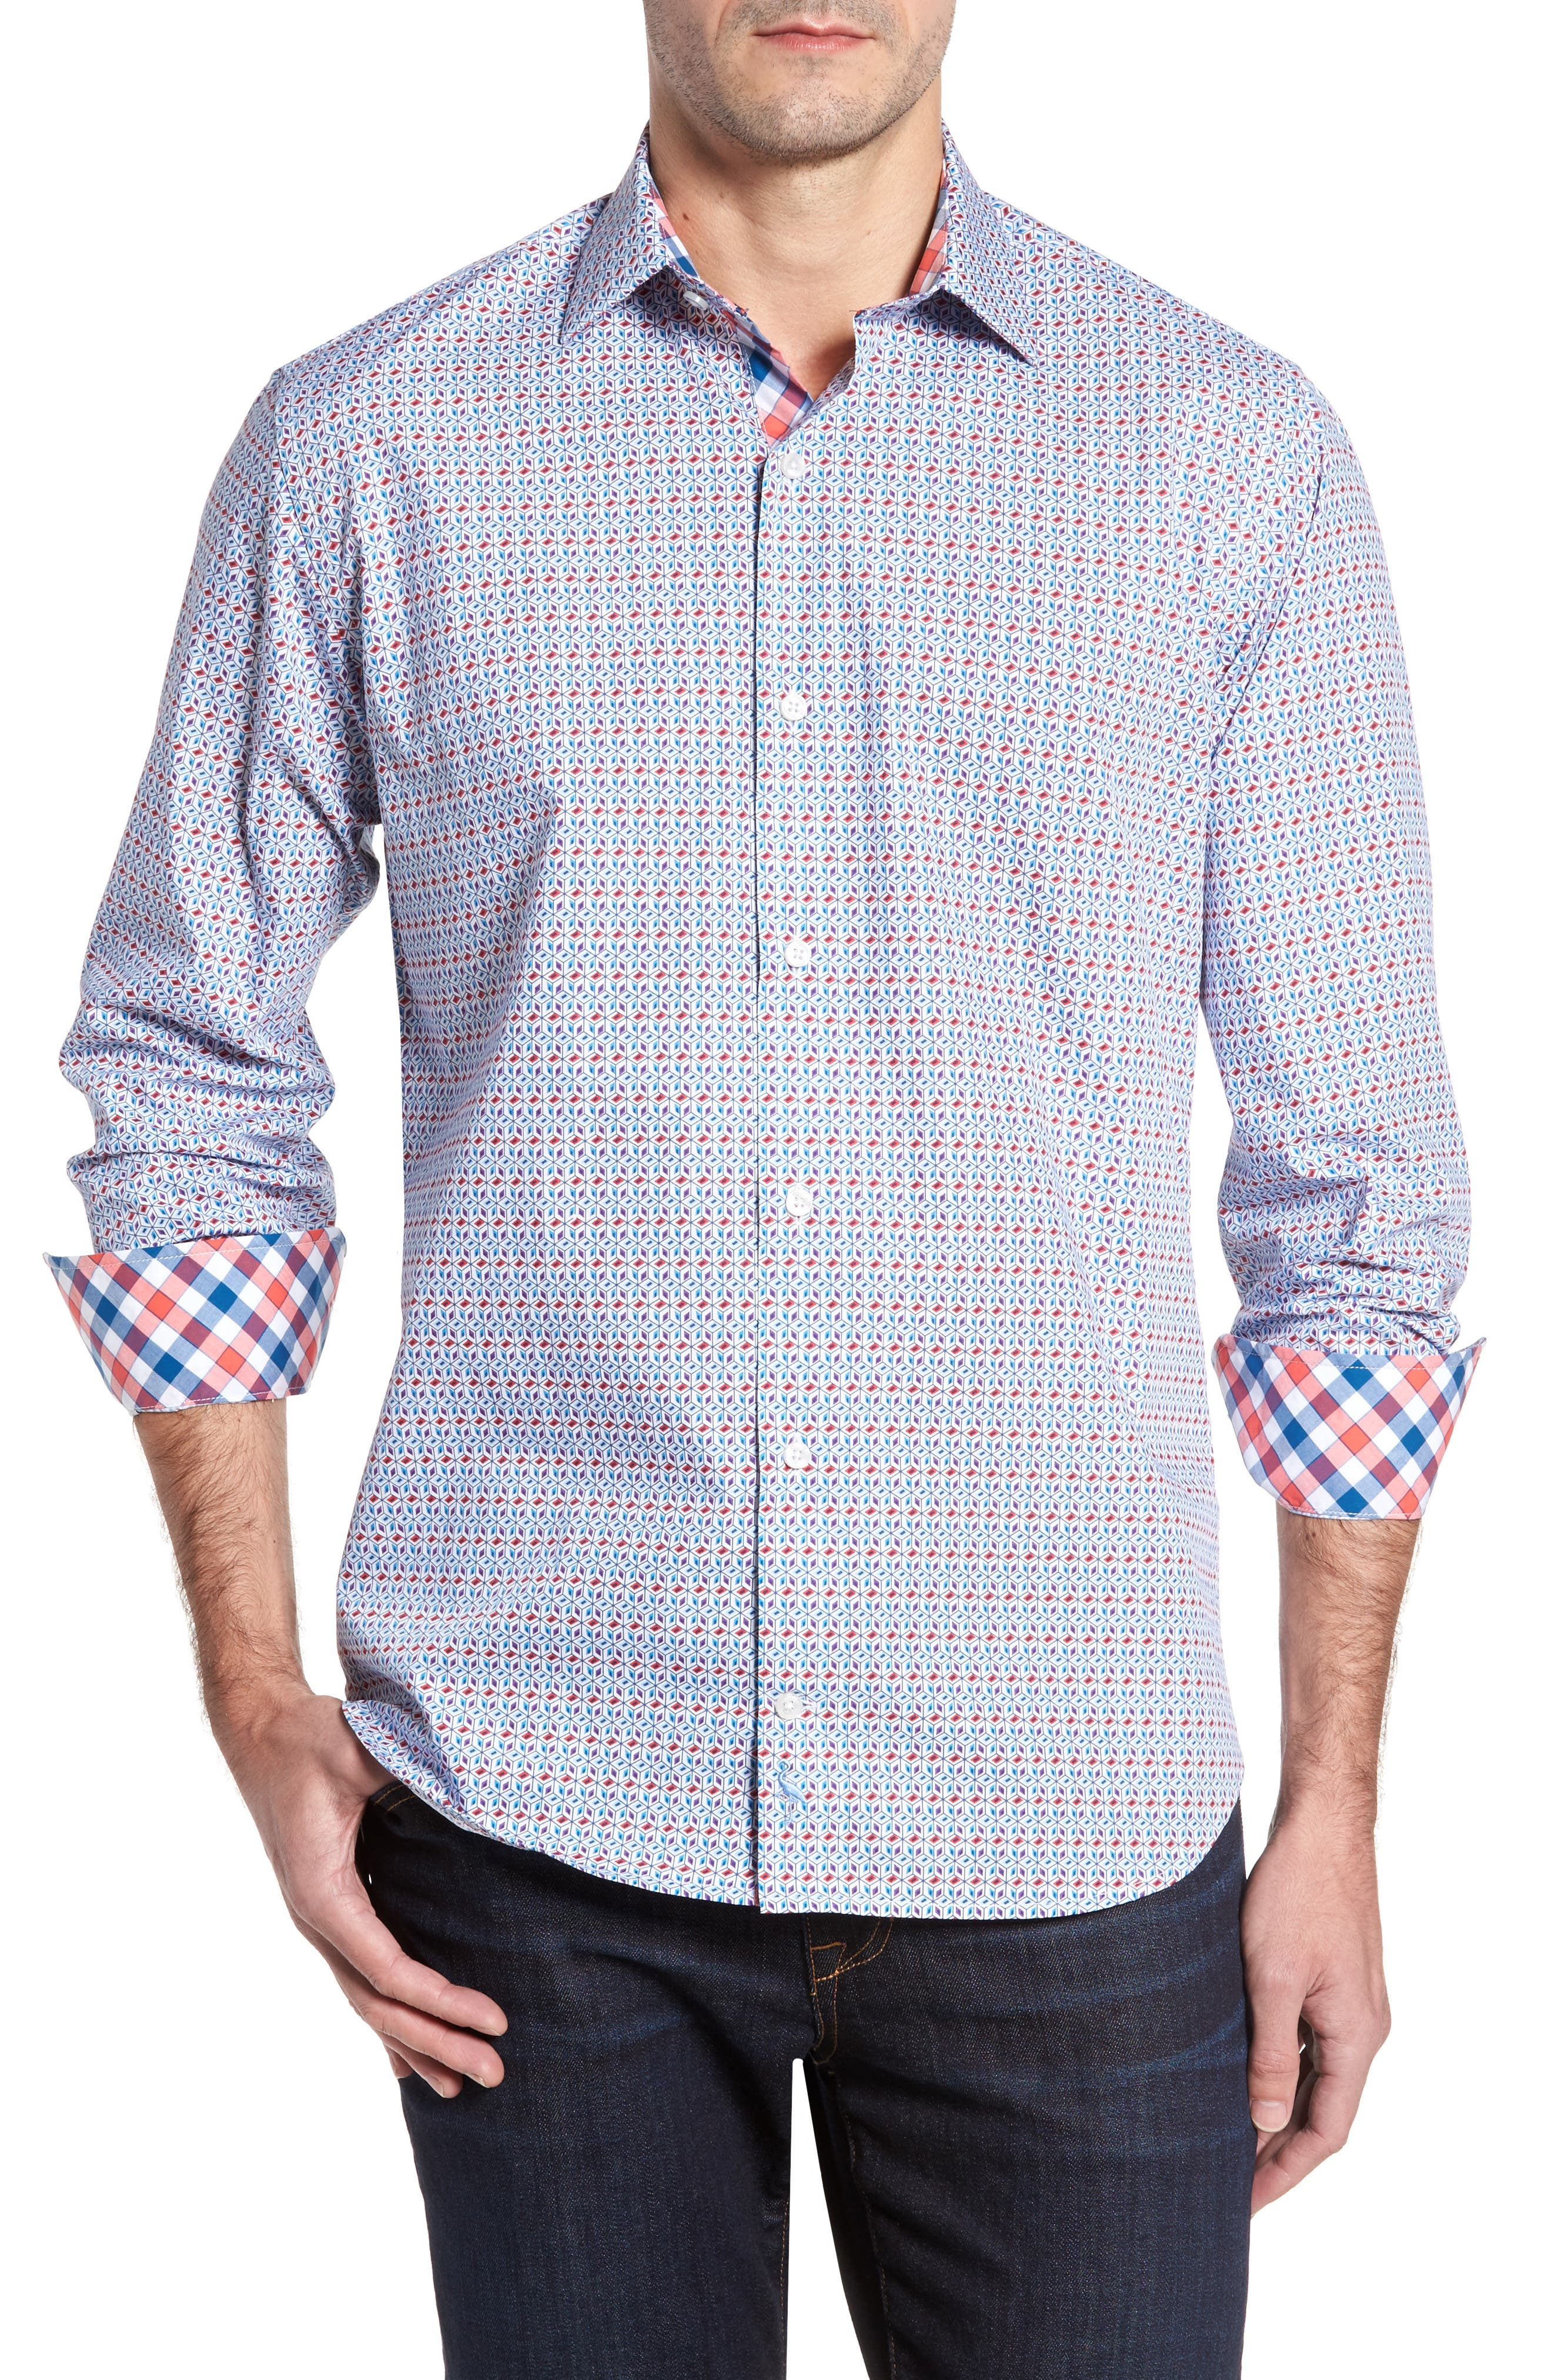 Angia Print Sport Shirt,                             Main thumbnail 1, color,                             Blue